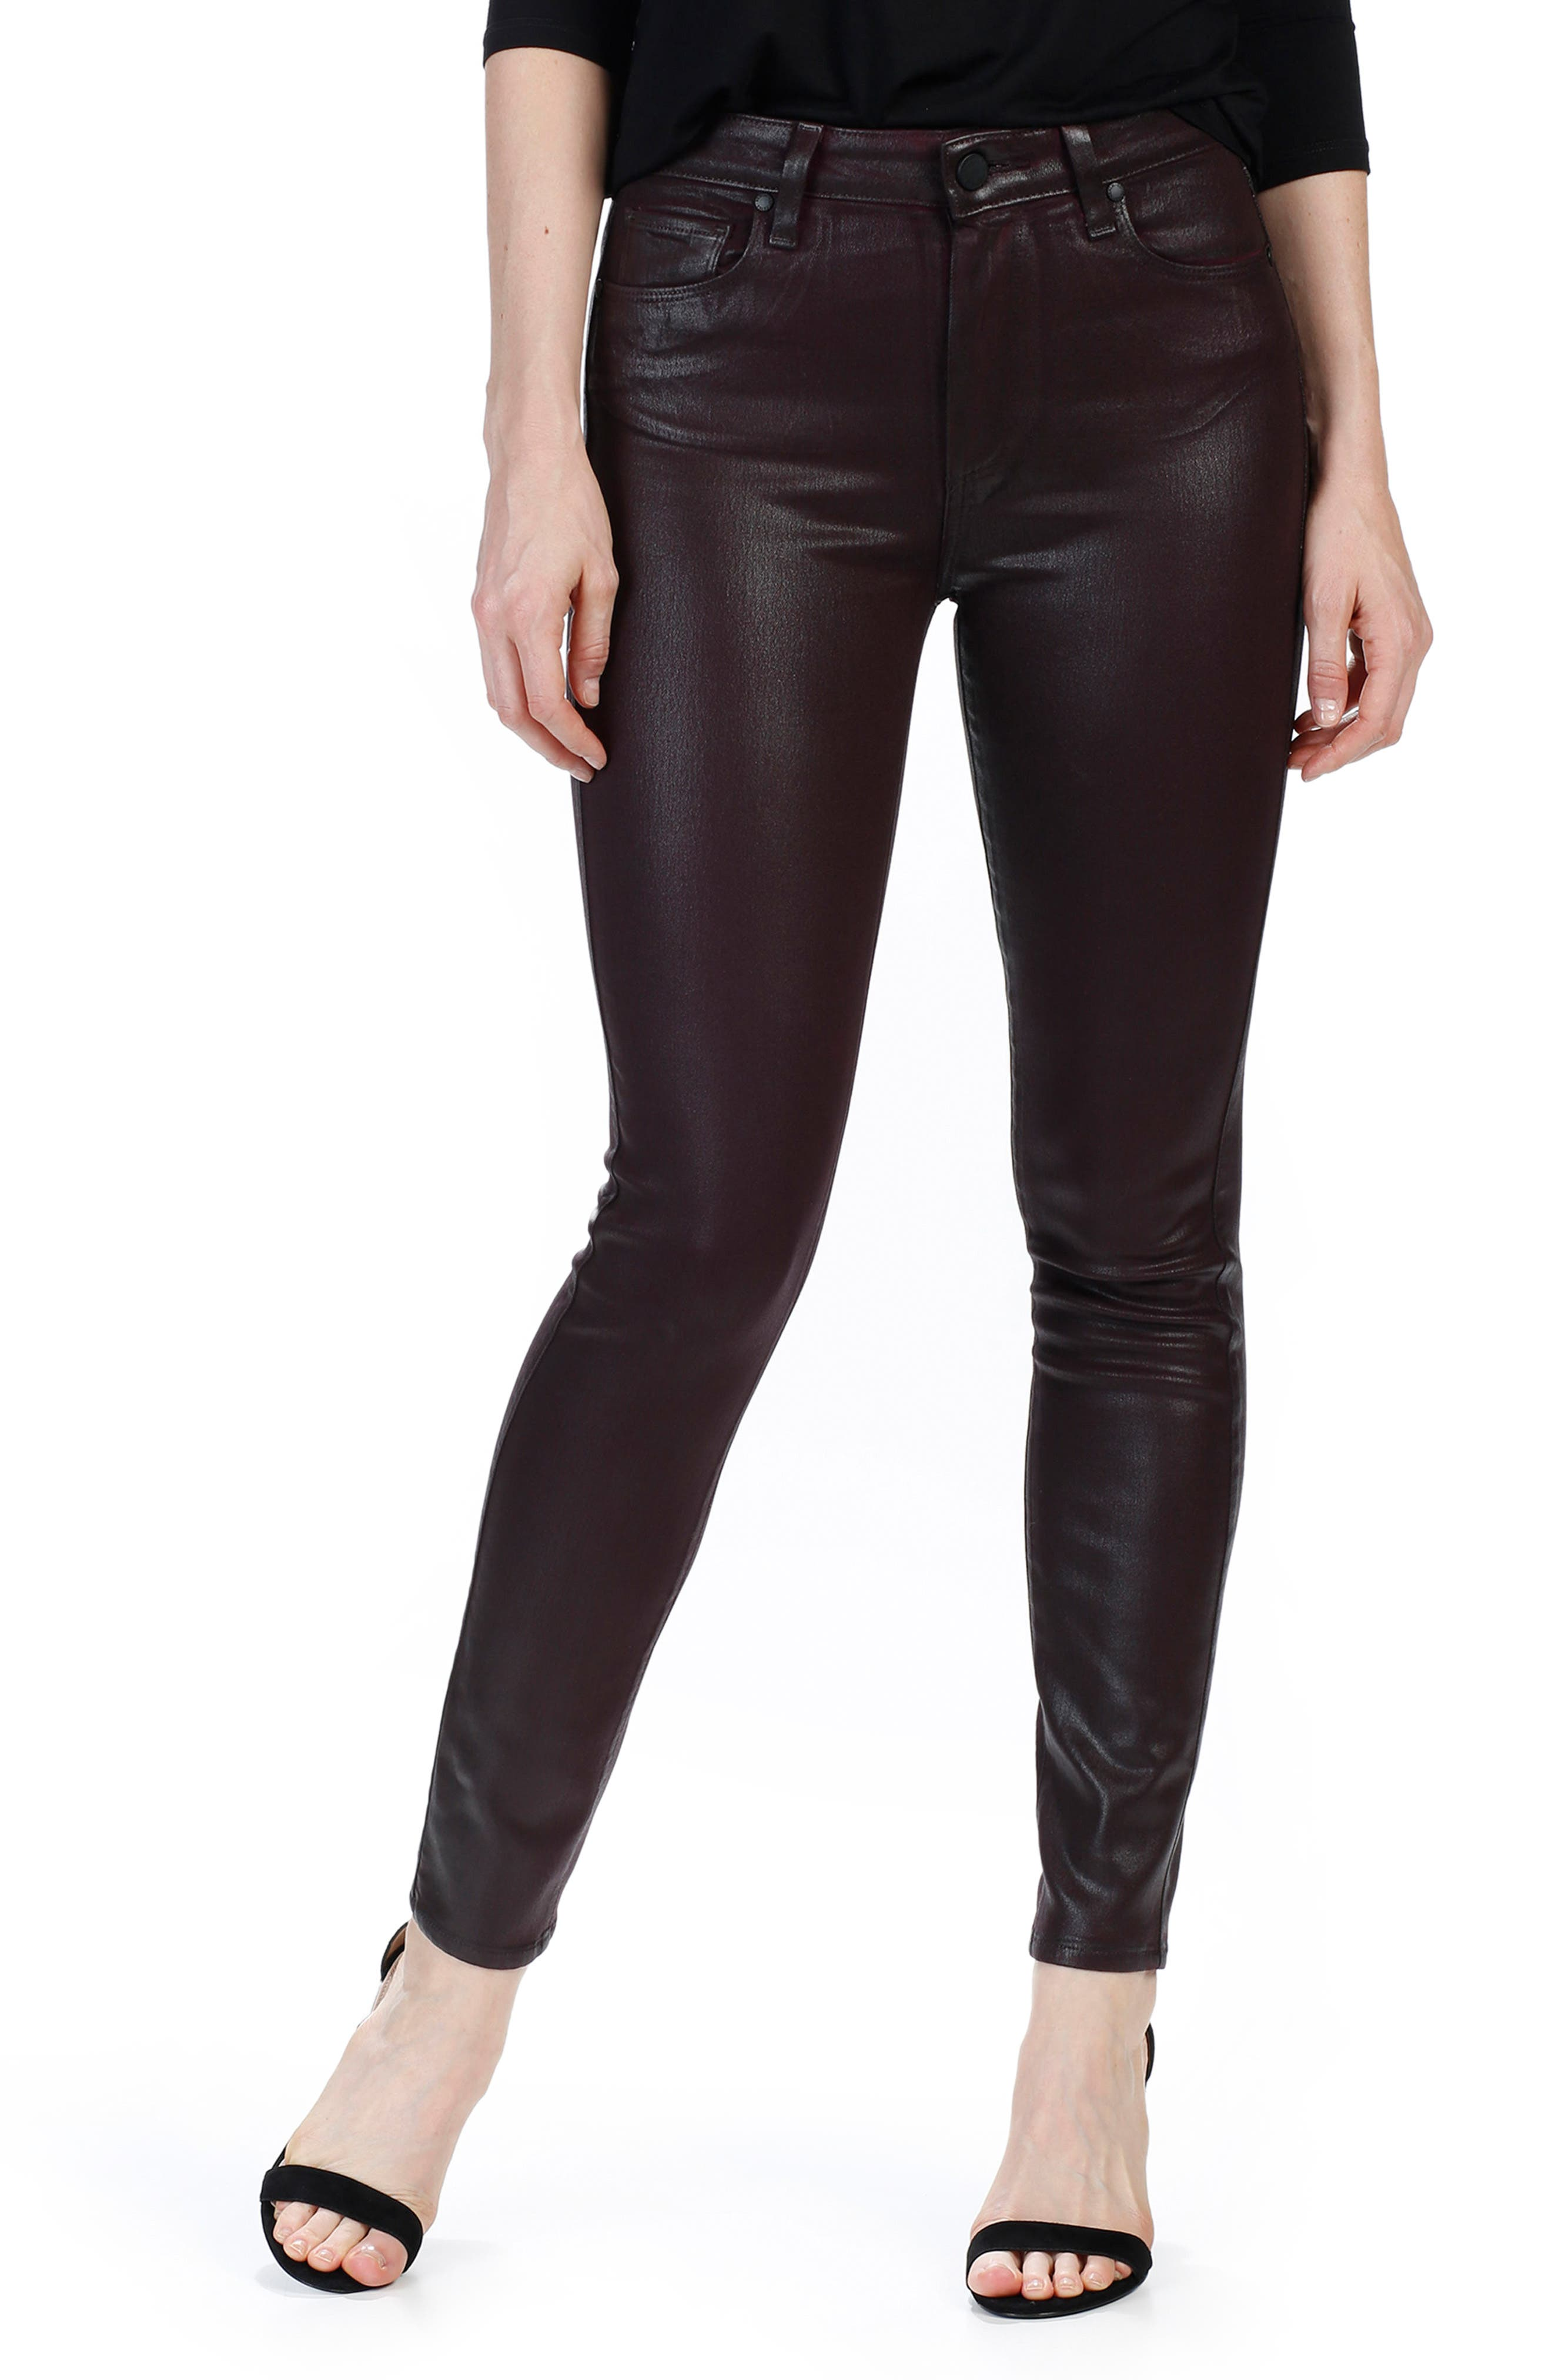 PAIGE Transcend - Hoxton High Waist Ankle Skinny Jeans (Wine Luxe Coated)